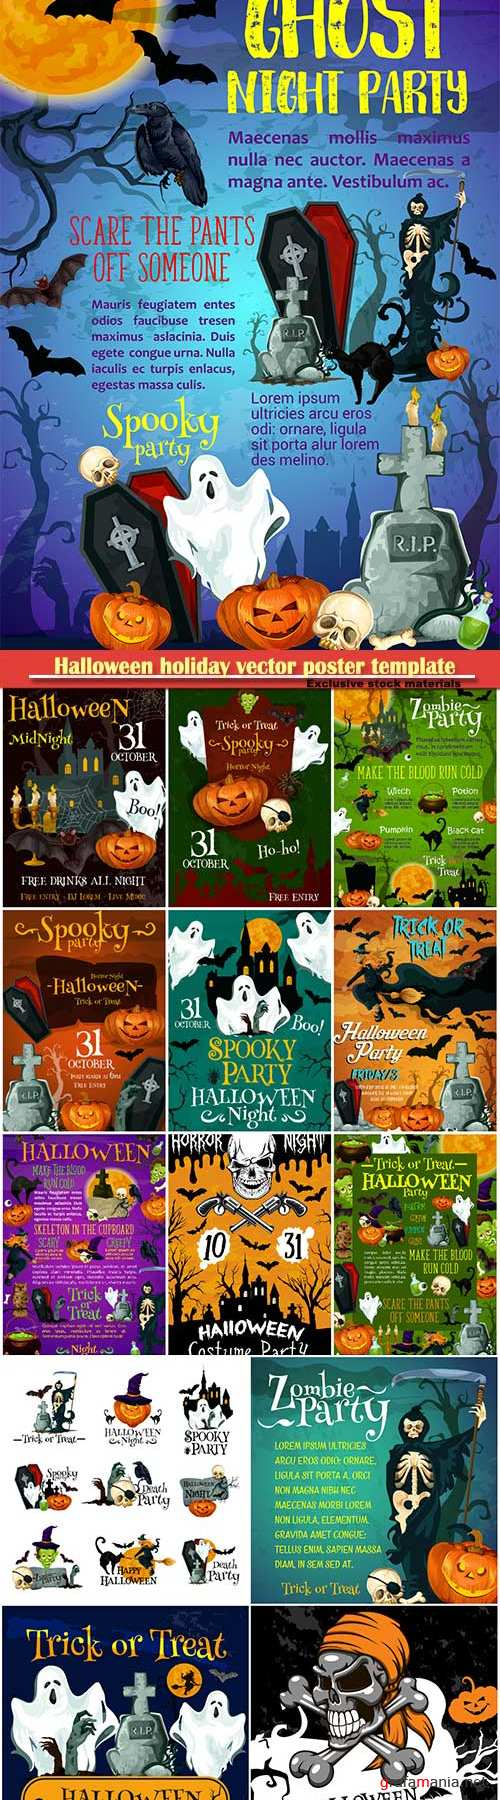 Halloween holiday vector poster template, pumpkin with witch hat, spider and skull, flying bat and ghost, creepy skeleton with scythe, cemetery and zombie